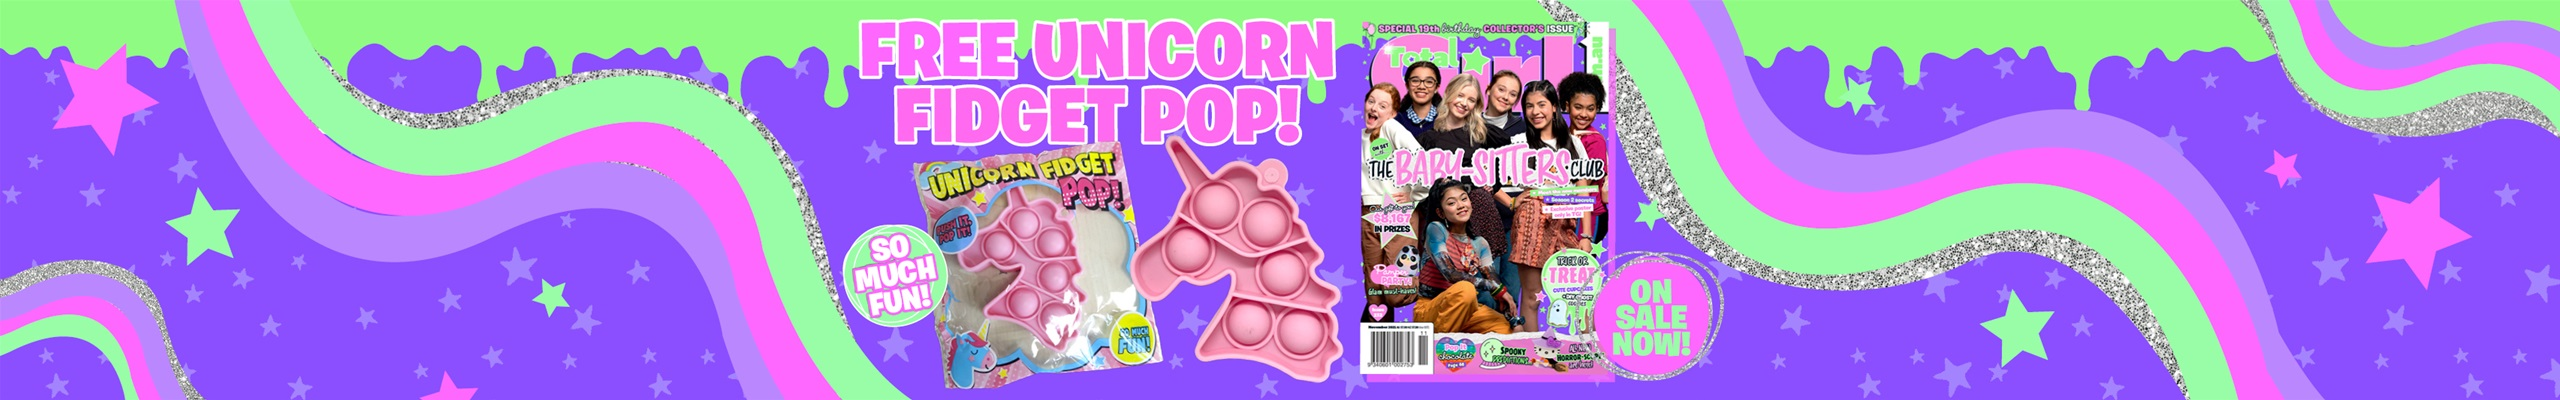 Collector's issue! Sneak Peek of the November mag (19th birthday issue)